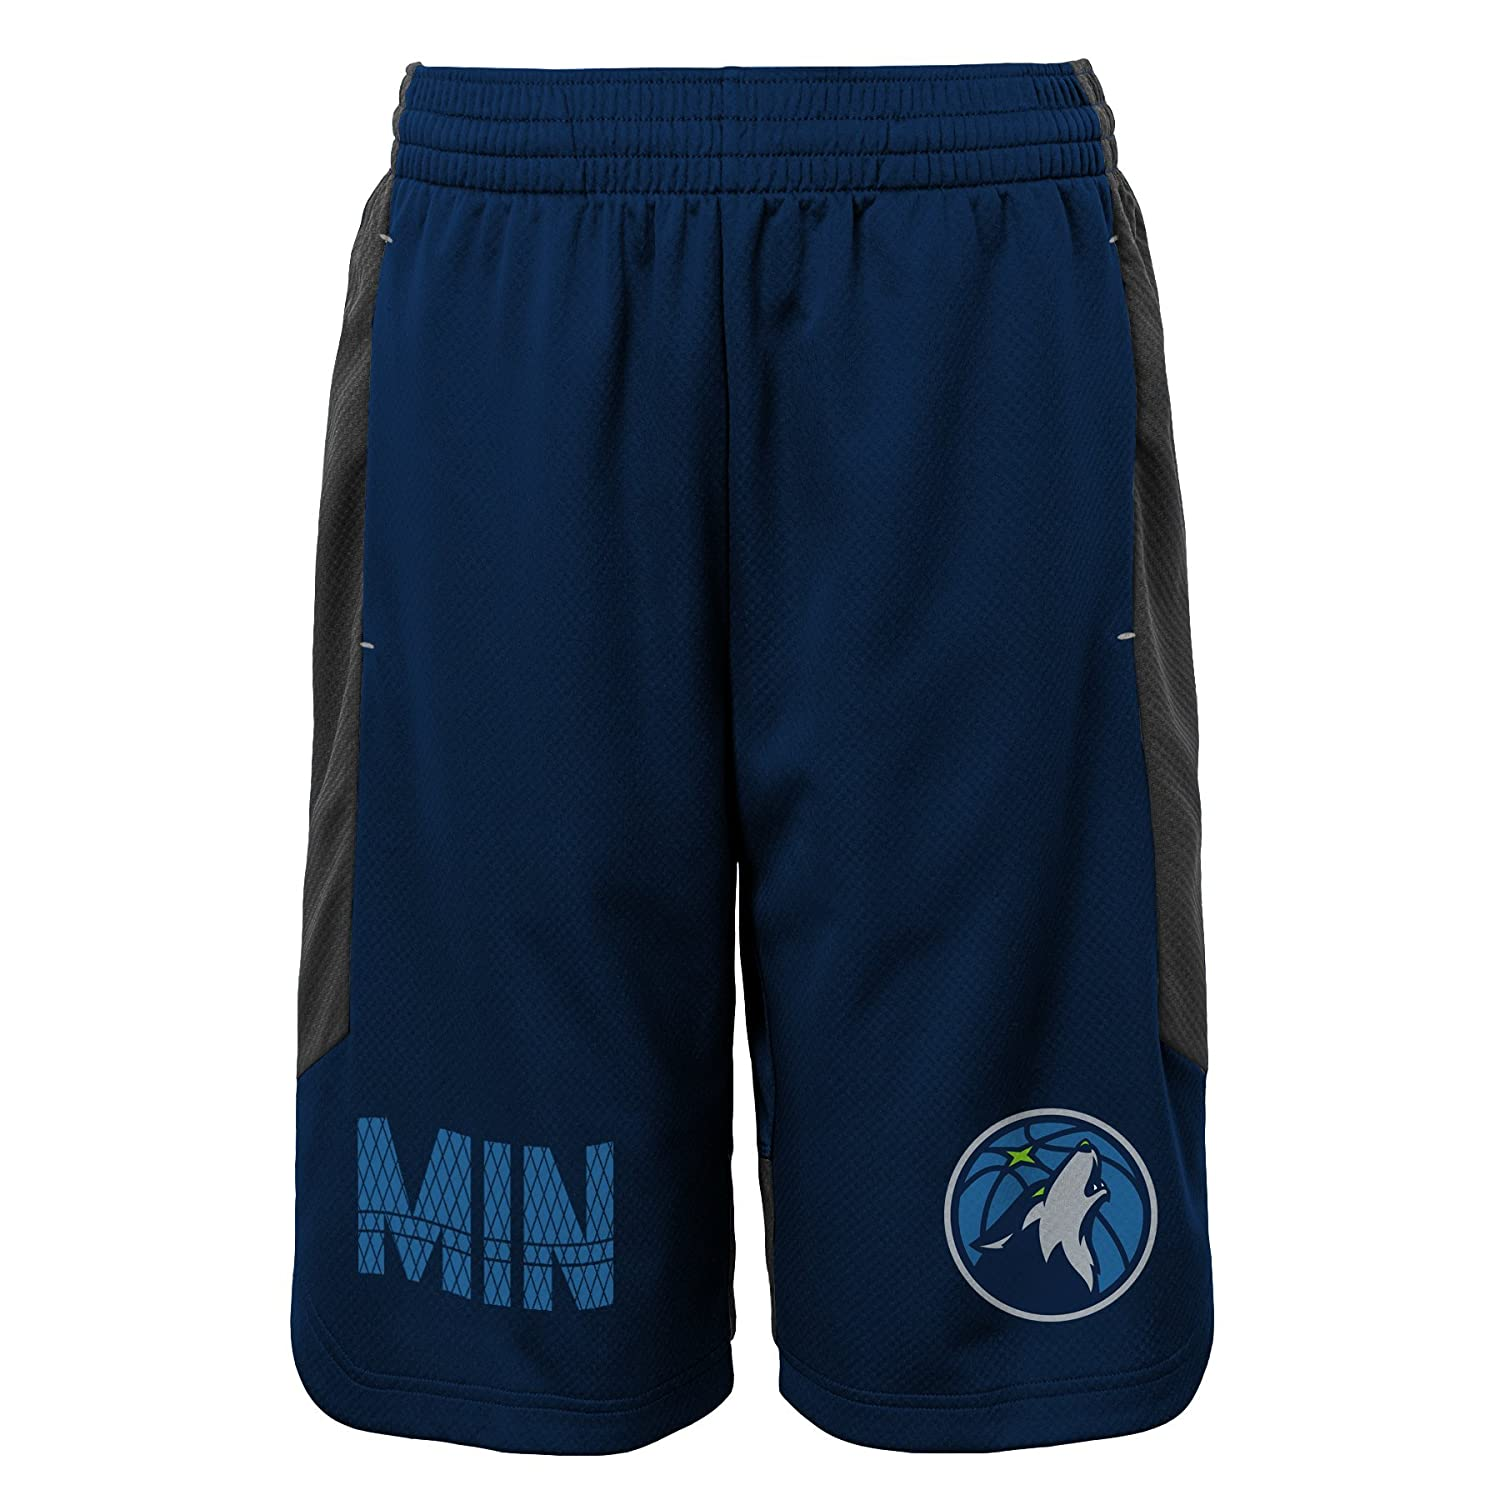 5-6 NBA Kids /& Youth Boys Jump Ball Short Minnesota Timberwolves-Charcoal-M